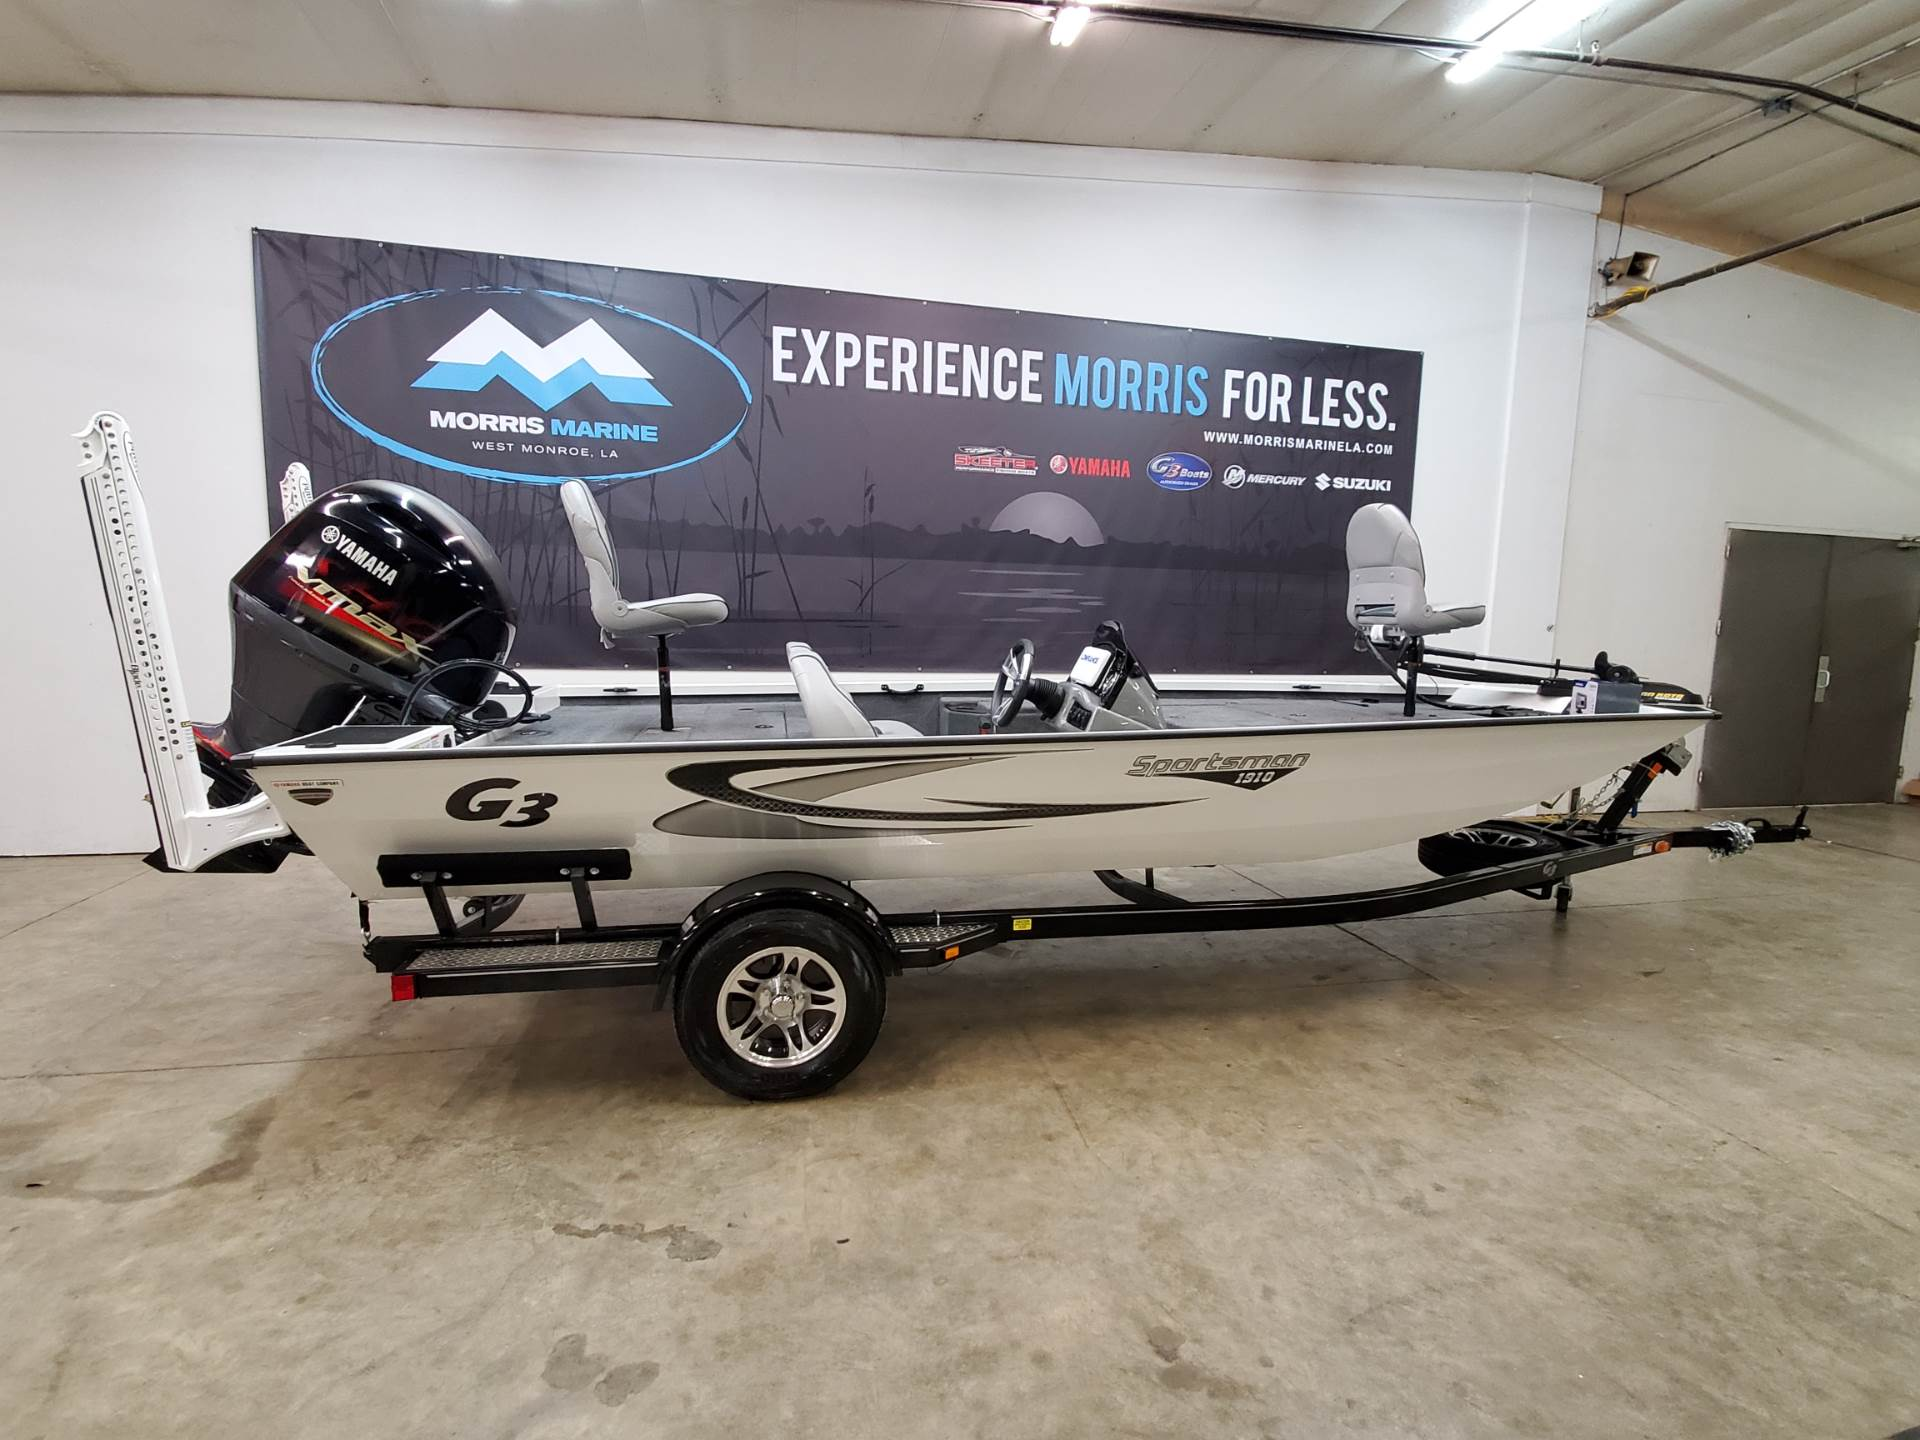 2019 G3 Sportsman 1910 Limited Edition in West Monroe, Louisiana - Photo 1